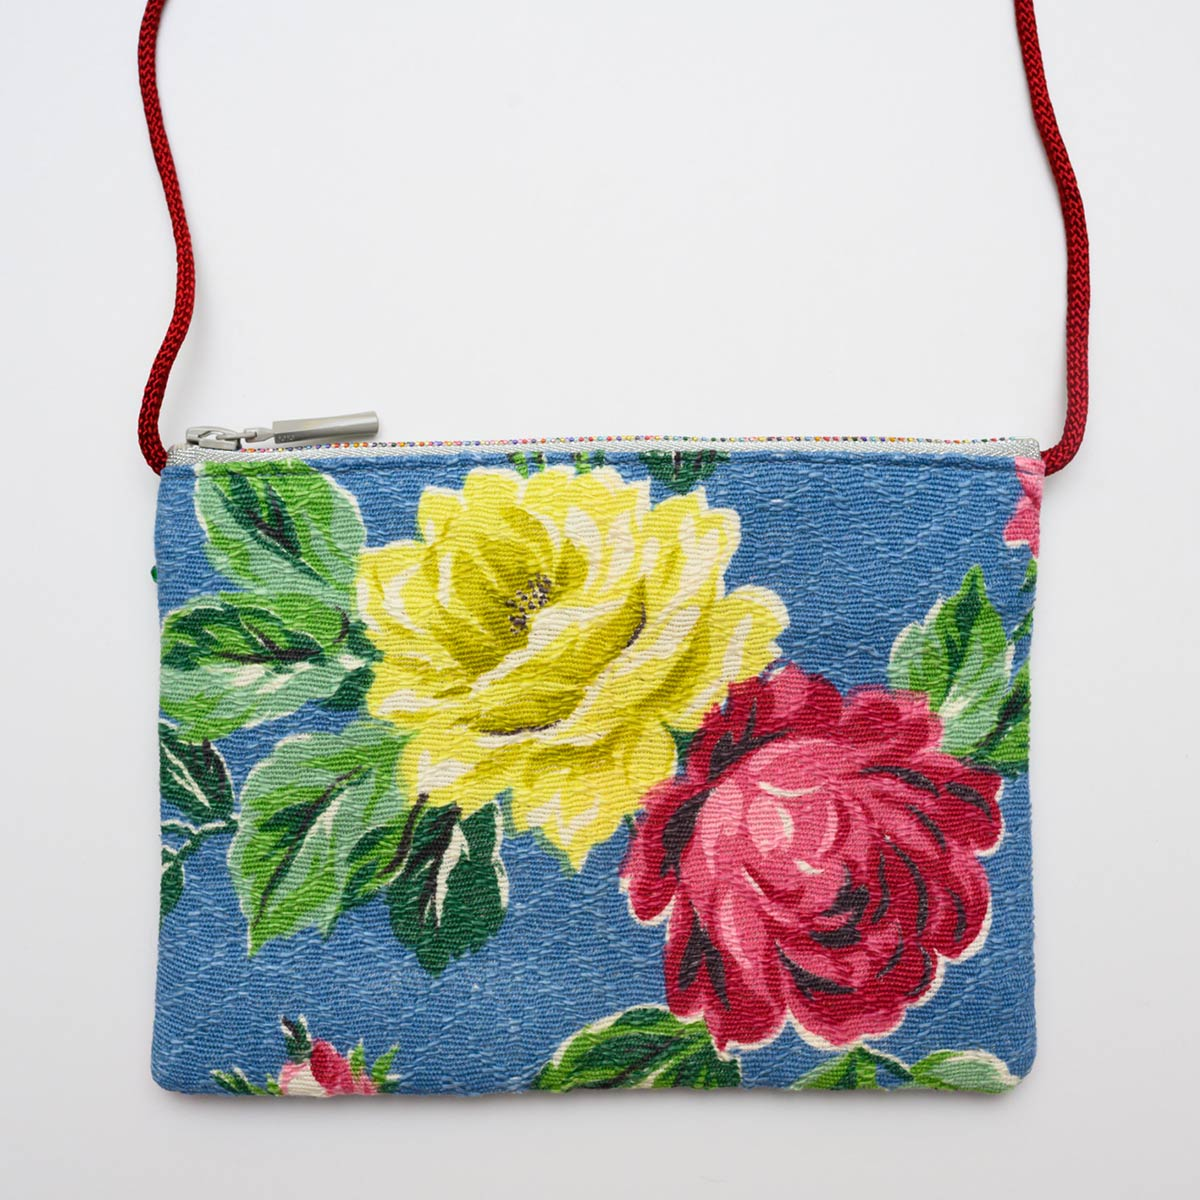 The Opera Bag – Rose motif on blue